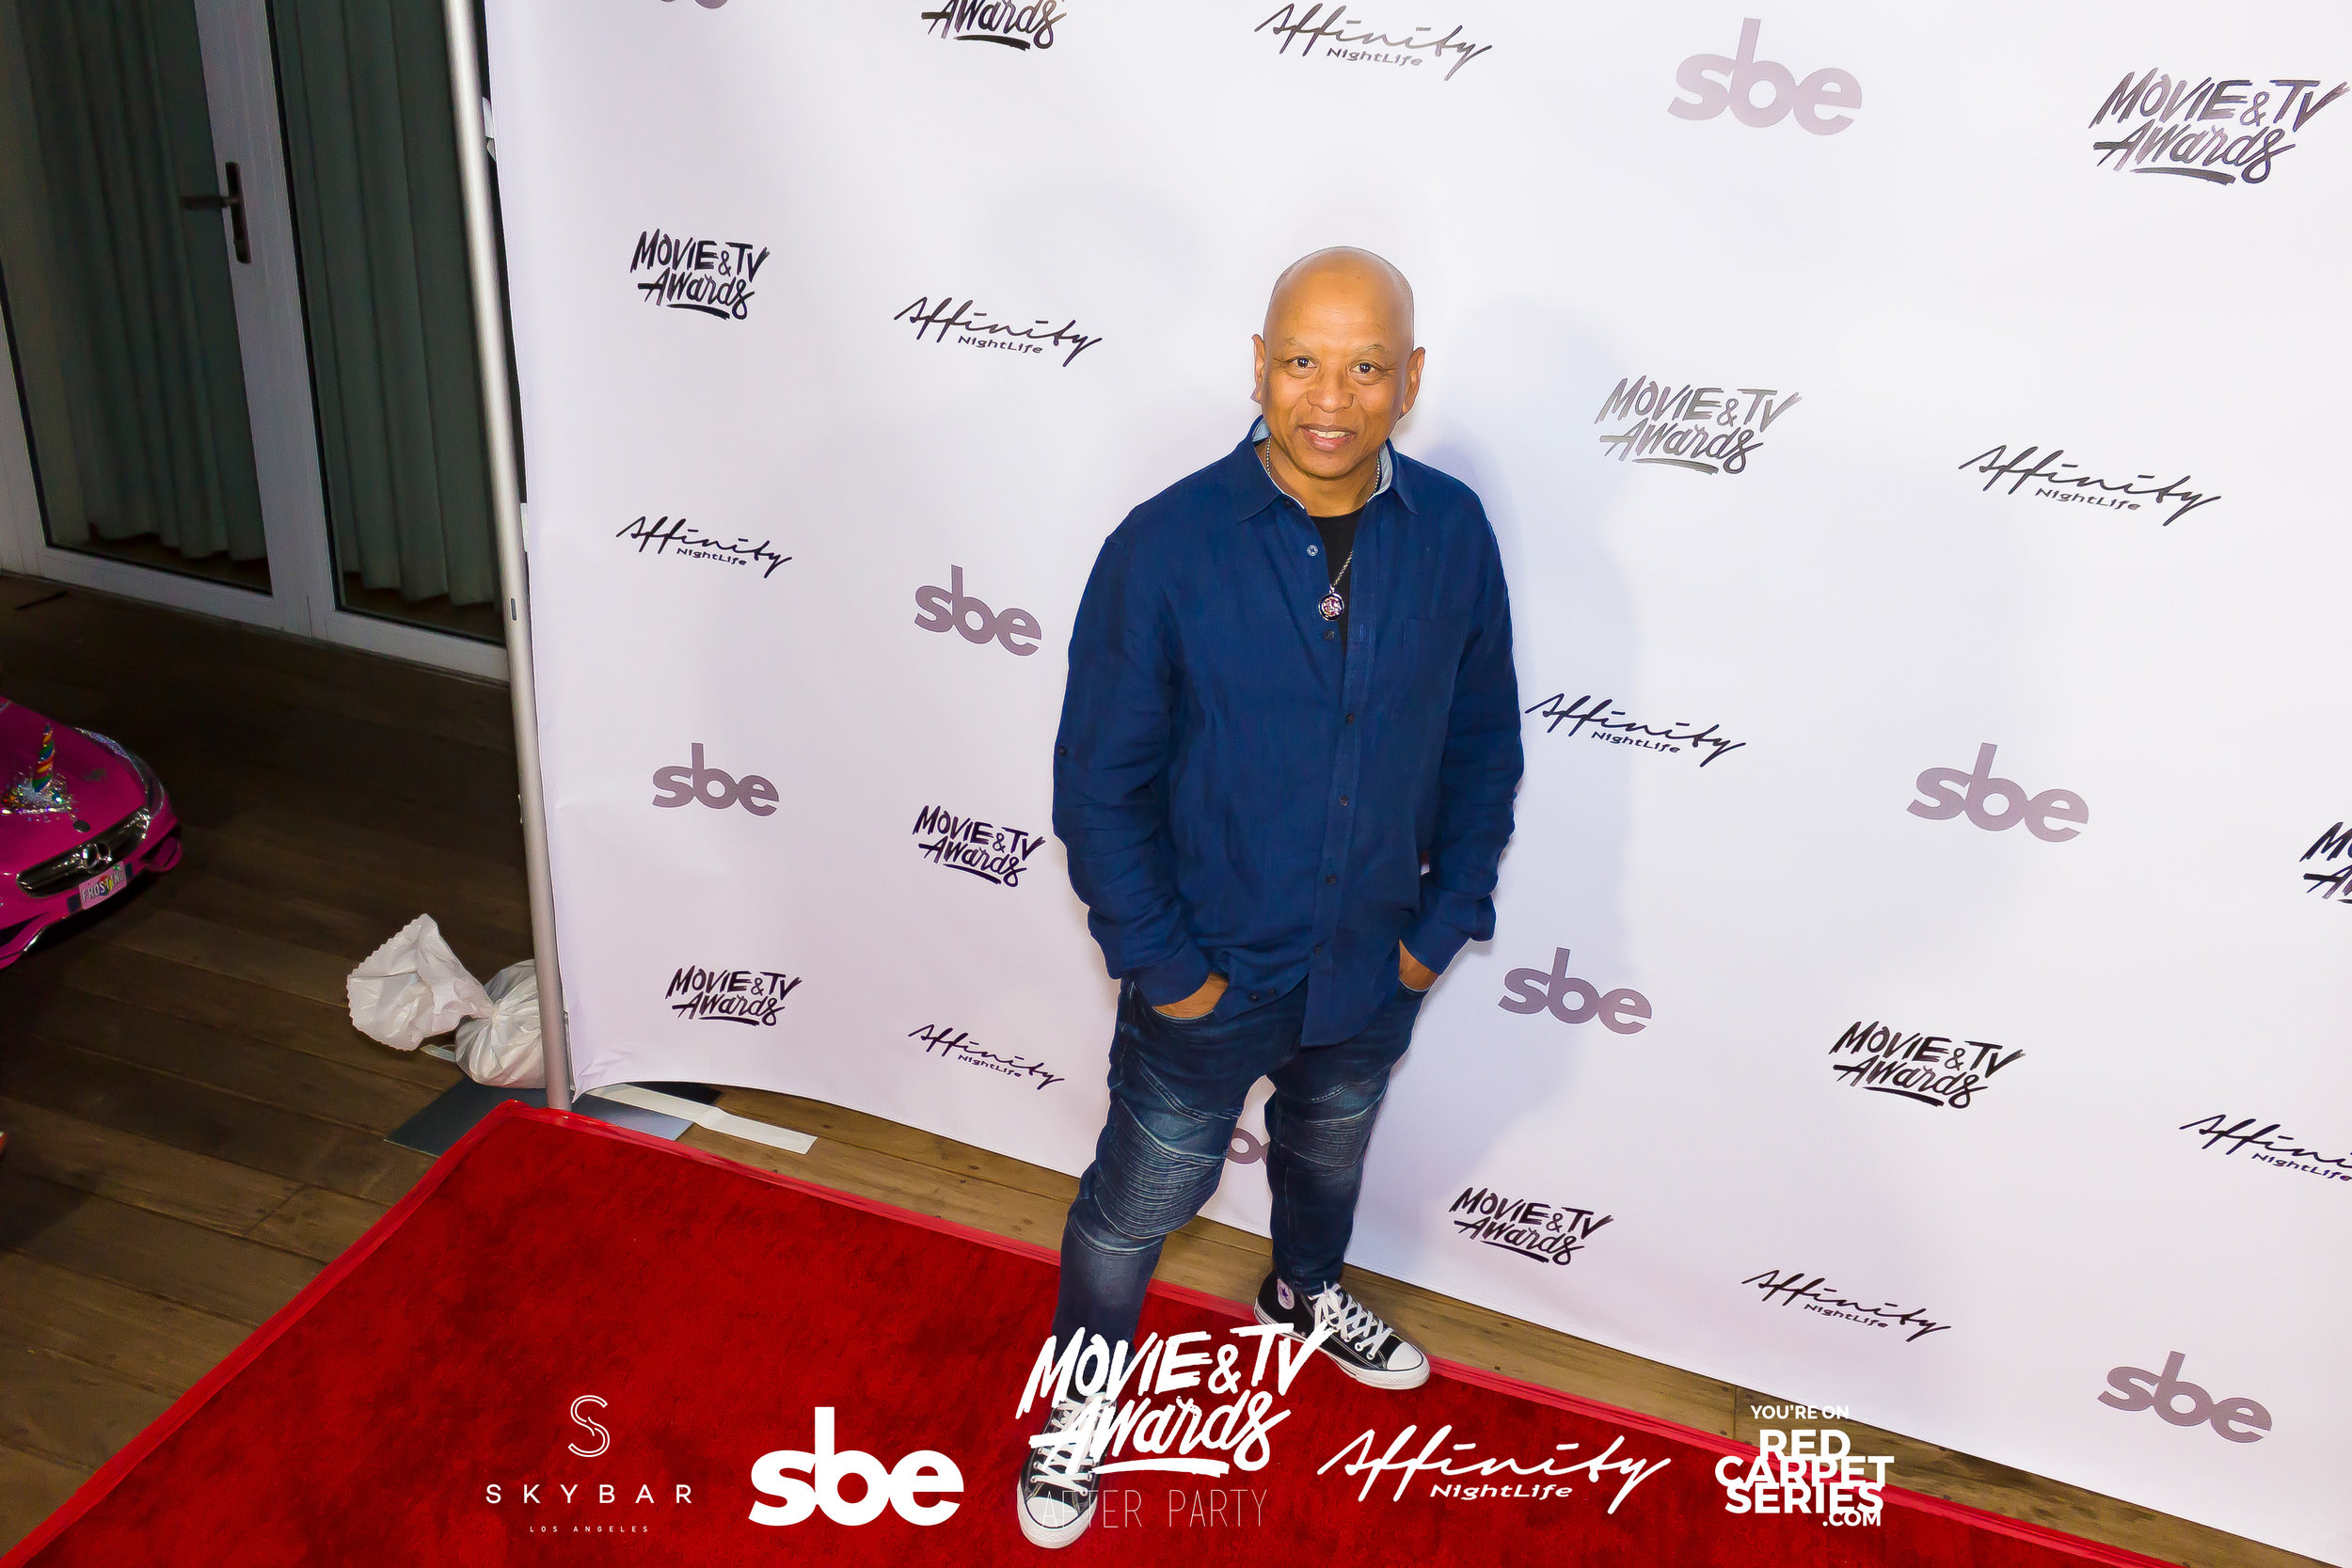 Affinity Nightlife MTV Movie & TV Awards After Party - Skybar at Mondrian - 06-15-19 - Vol. 1_44.jpg